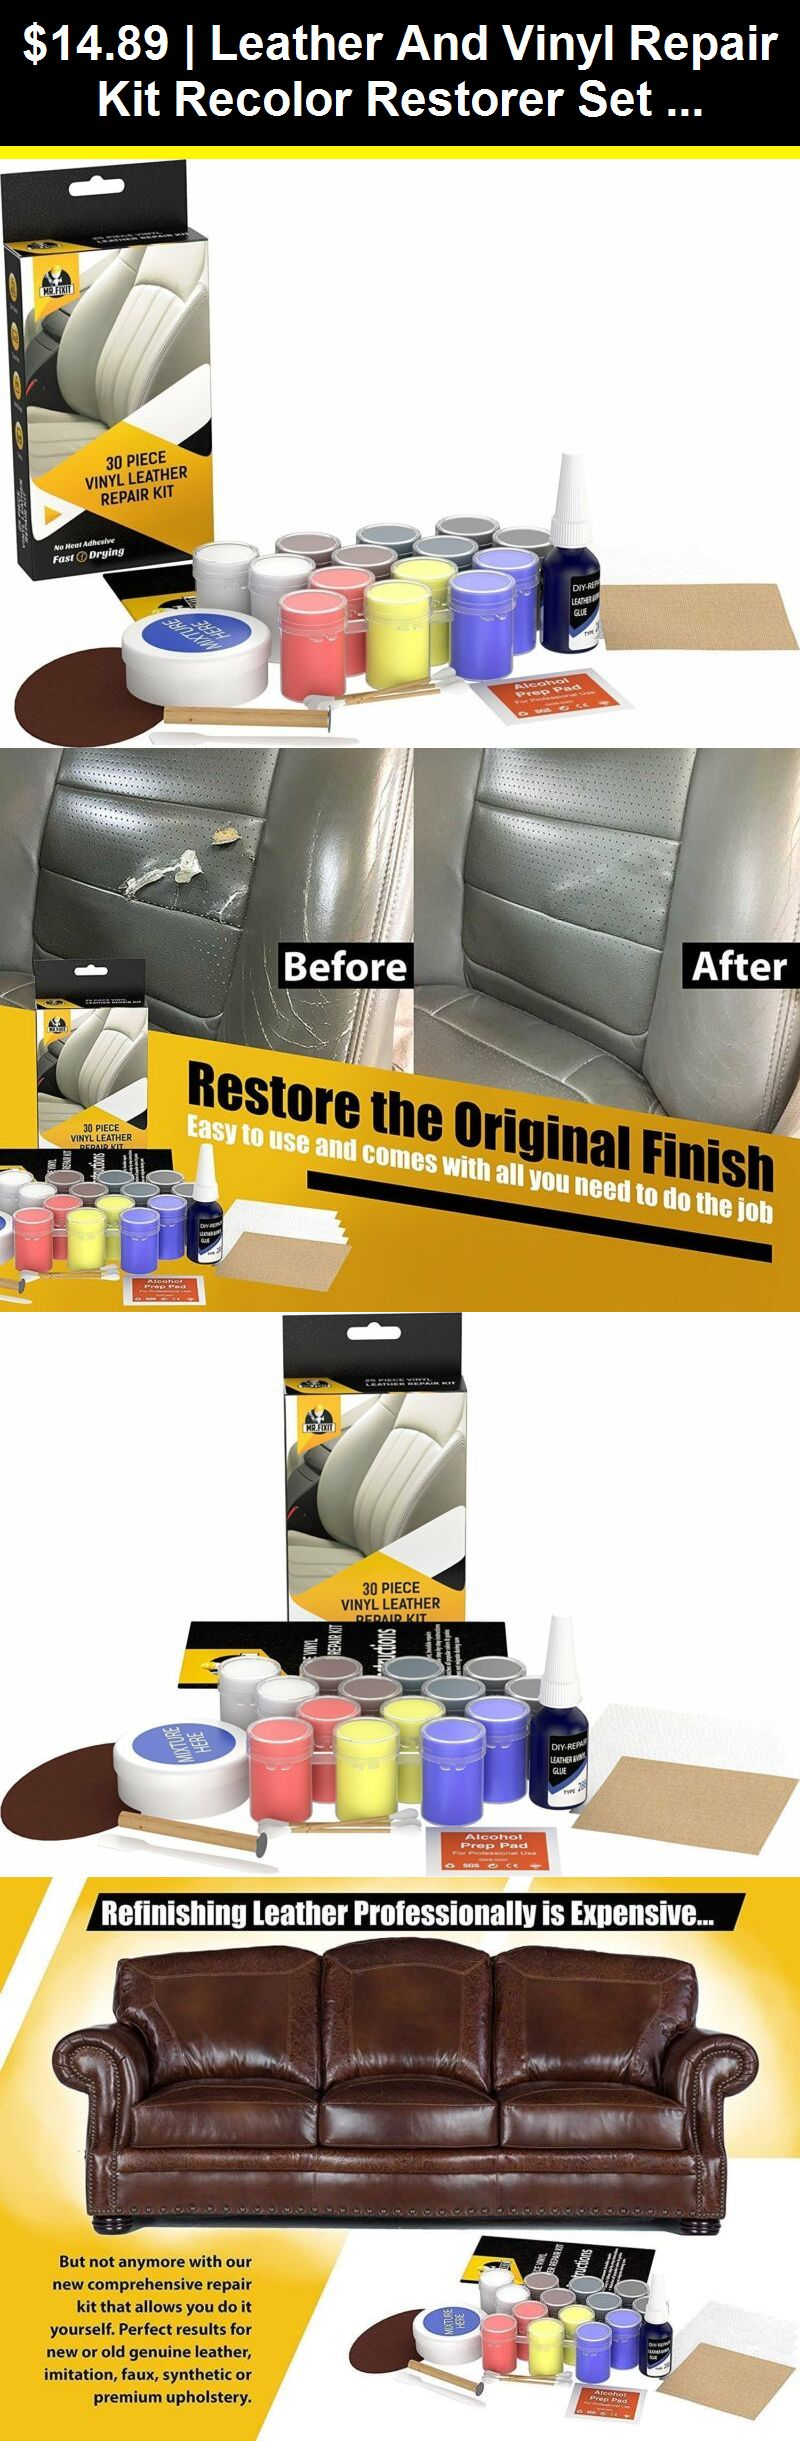 Other Leather Treatments 183147 Leather And Vinyl Repair Kit Recolor Restorer Set For Couch Car Seat Vinyl Repair Leather Repair Leather Restoration